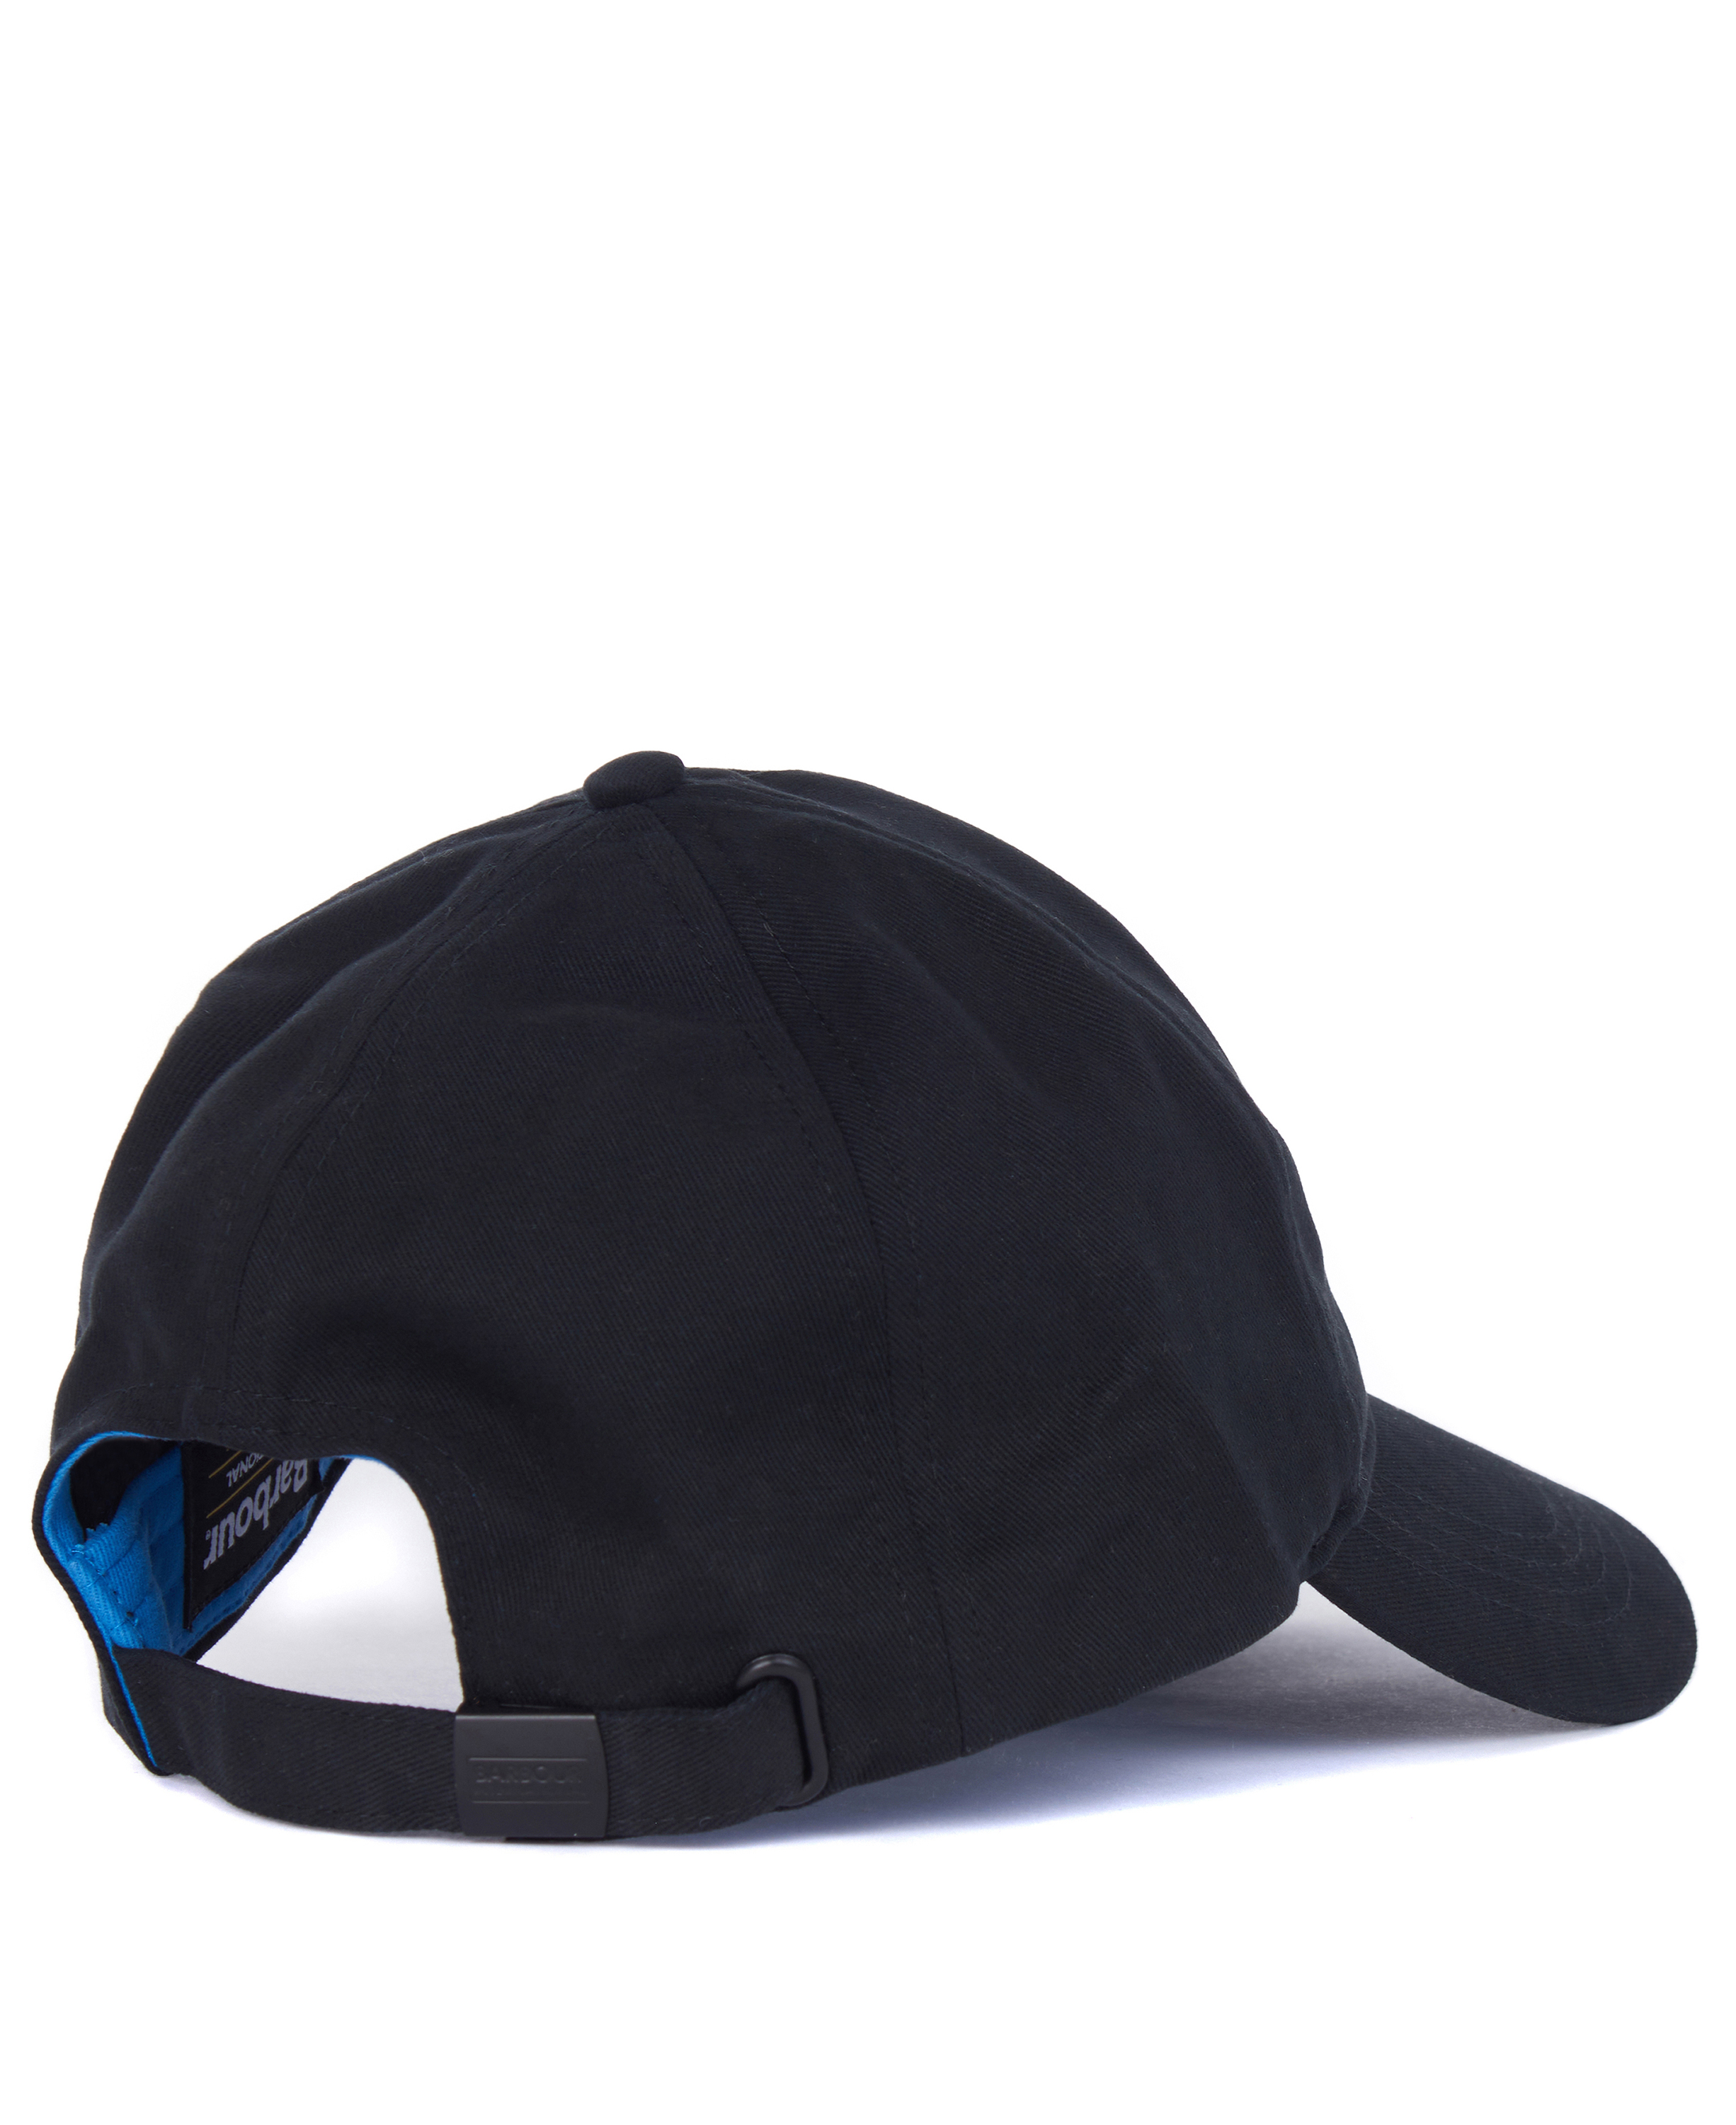 Intl Graphic Sports Cap